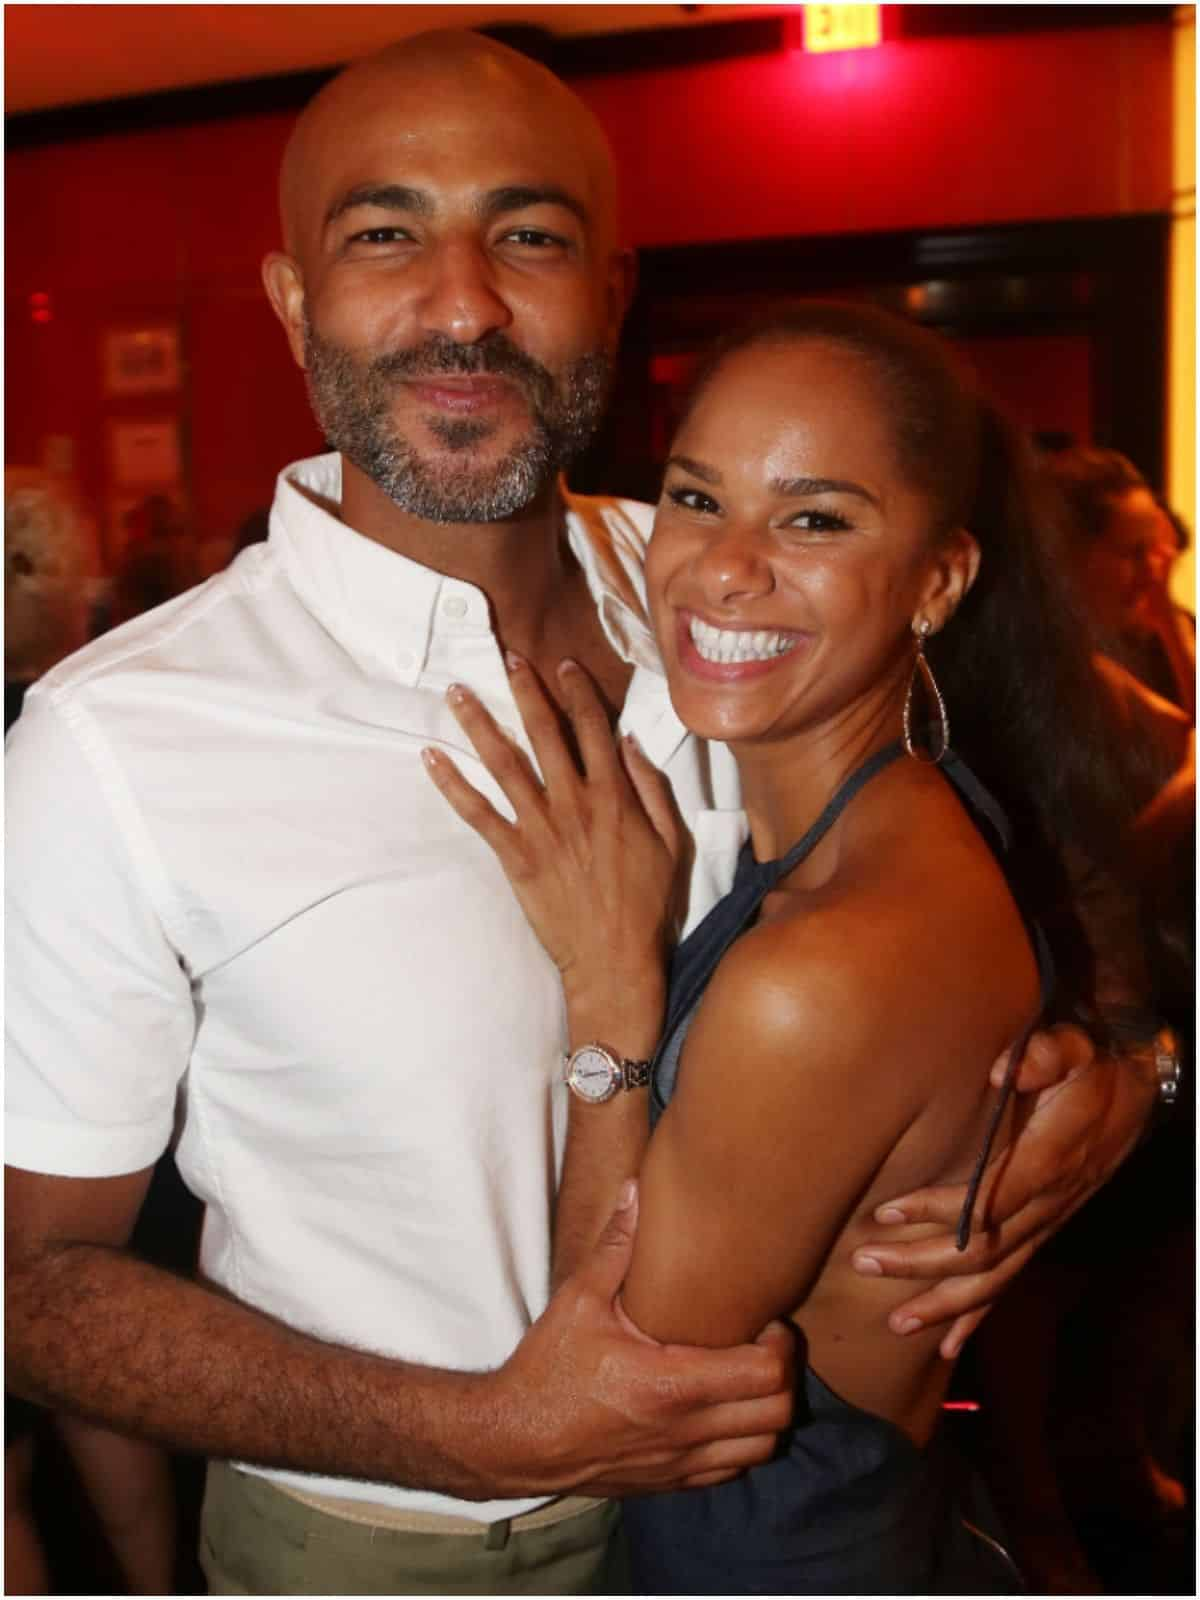 Misty Copeland and husband Olu Evans